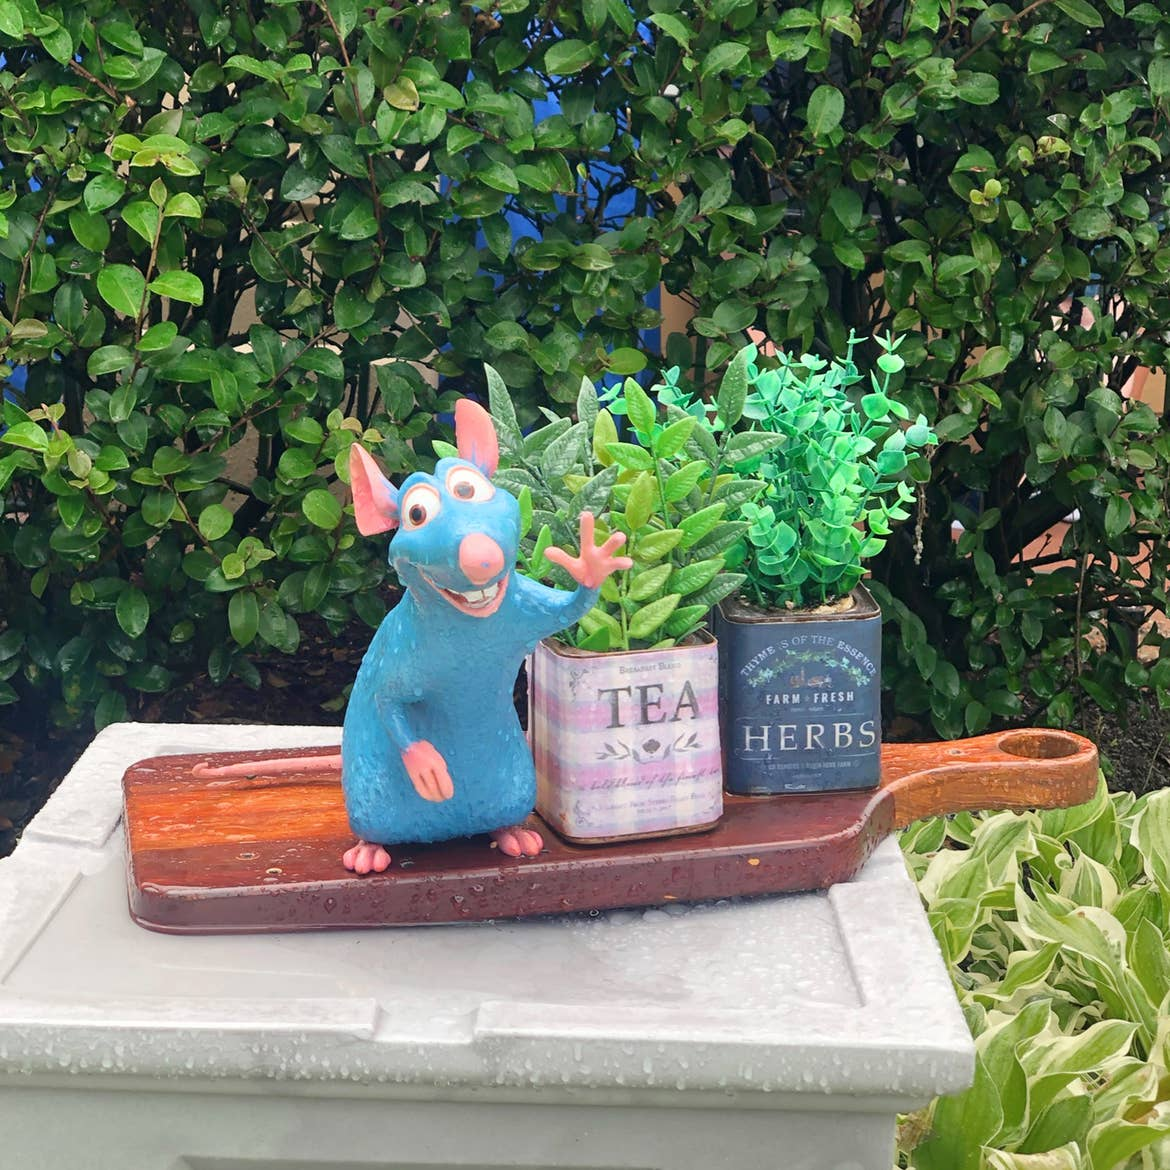 A Remy figurine stands next to canisters that read, 'Tea Leaves' and 'Herbs' near shrubbery.